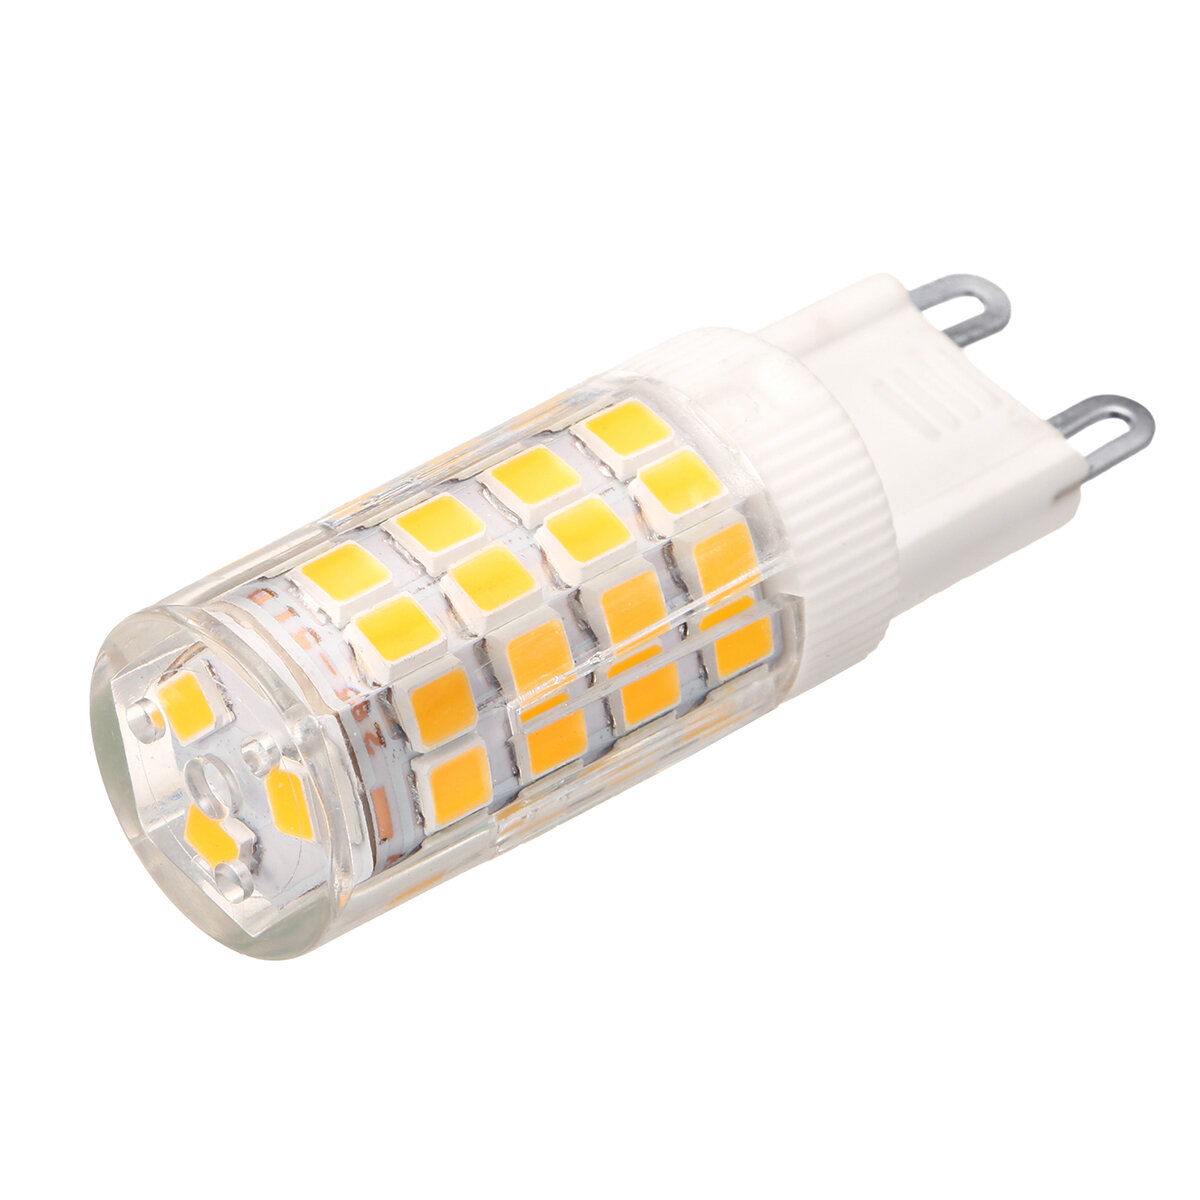 AC110-240V 9W G9 SMD2835 Non-dimmable 75 LED Ceramic Corn Light Bulb for Outdoor Home Decoration - 11